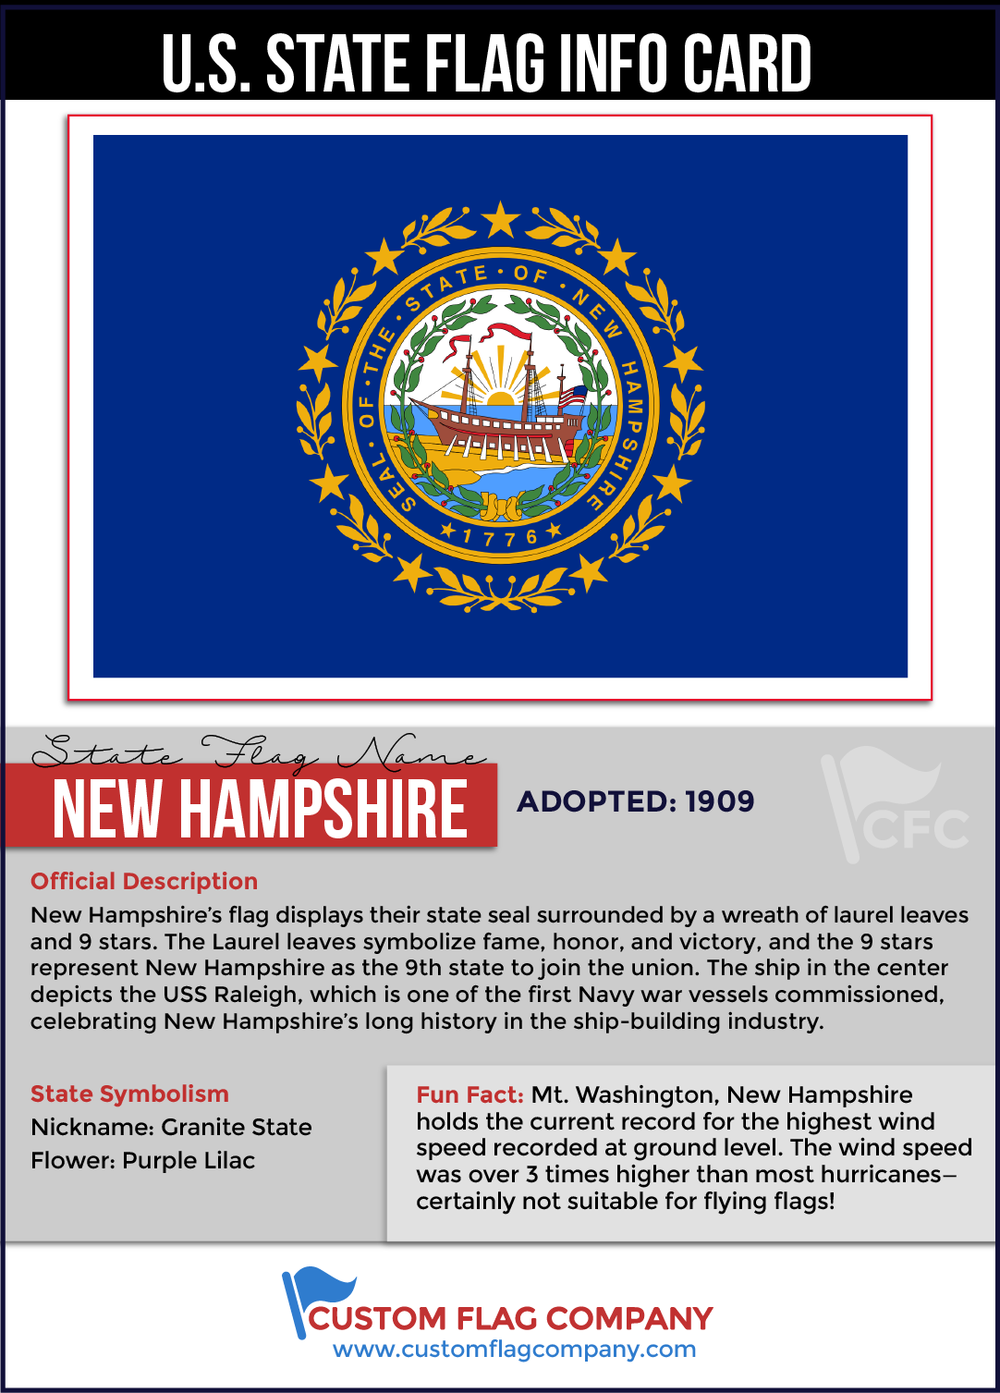 New Hampshire State Info Card